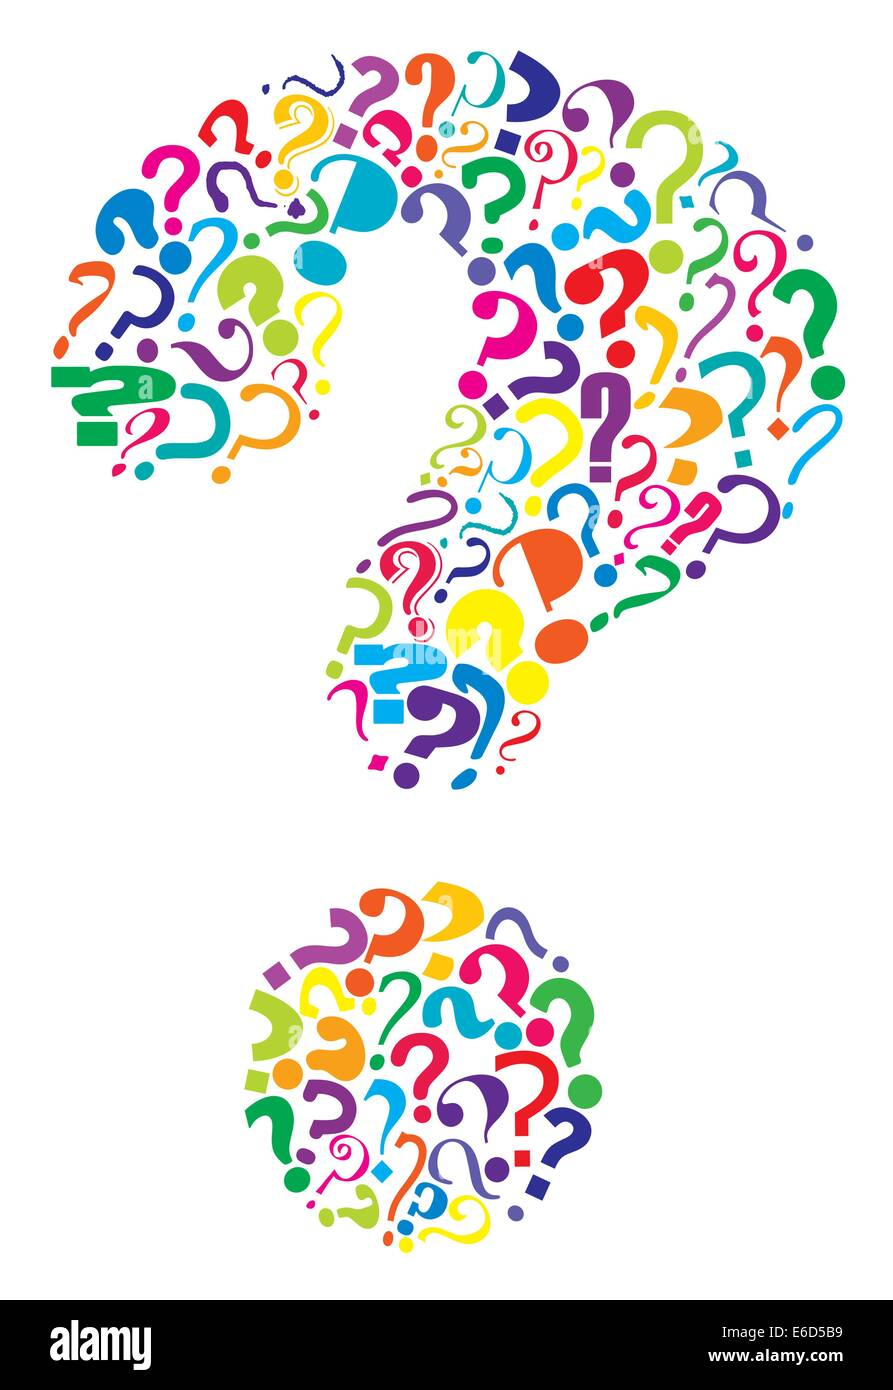 Editable vector question mark formed from many question marks - Stock Image